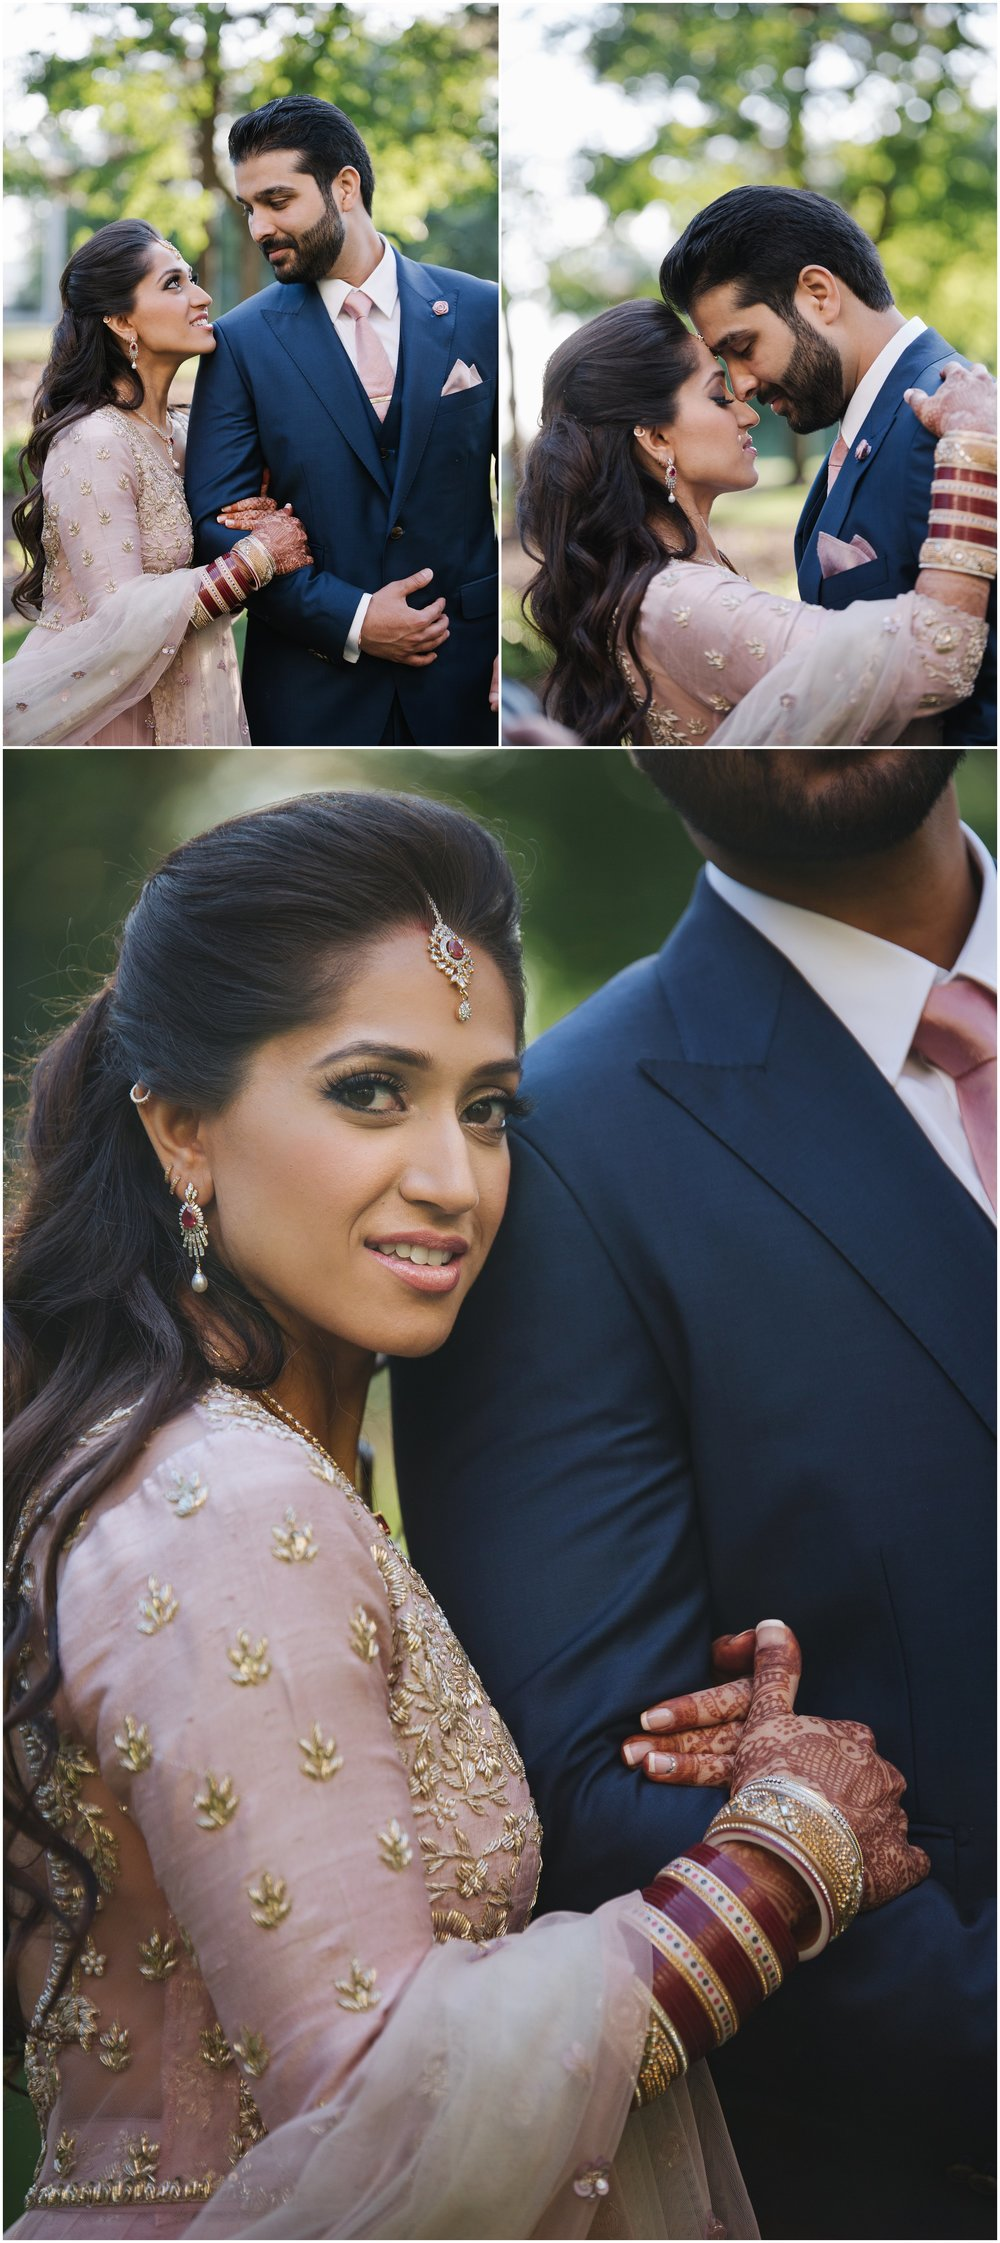 Le Cape Weddings - South Asian Wedding in Illinois - Tanvi and Anshul -1698_LuxuryDestinationPhotographer.jpg